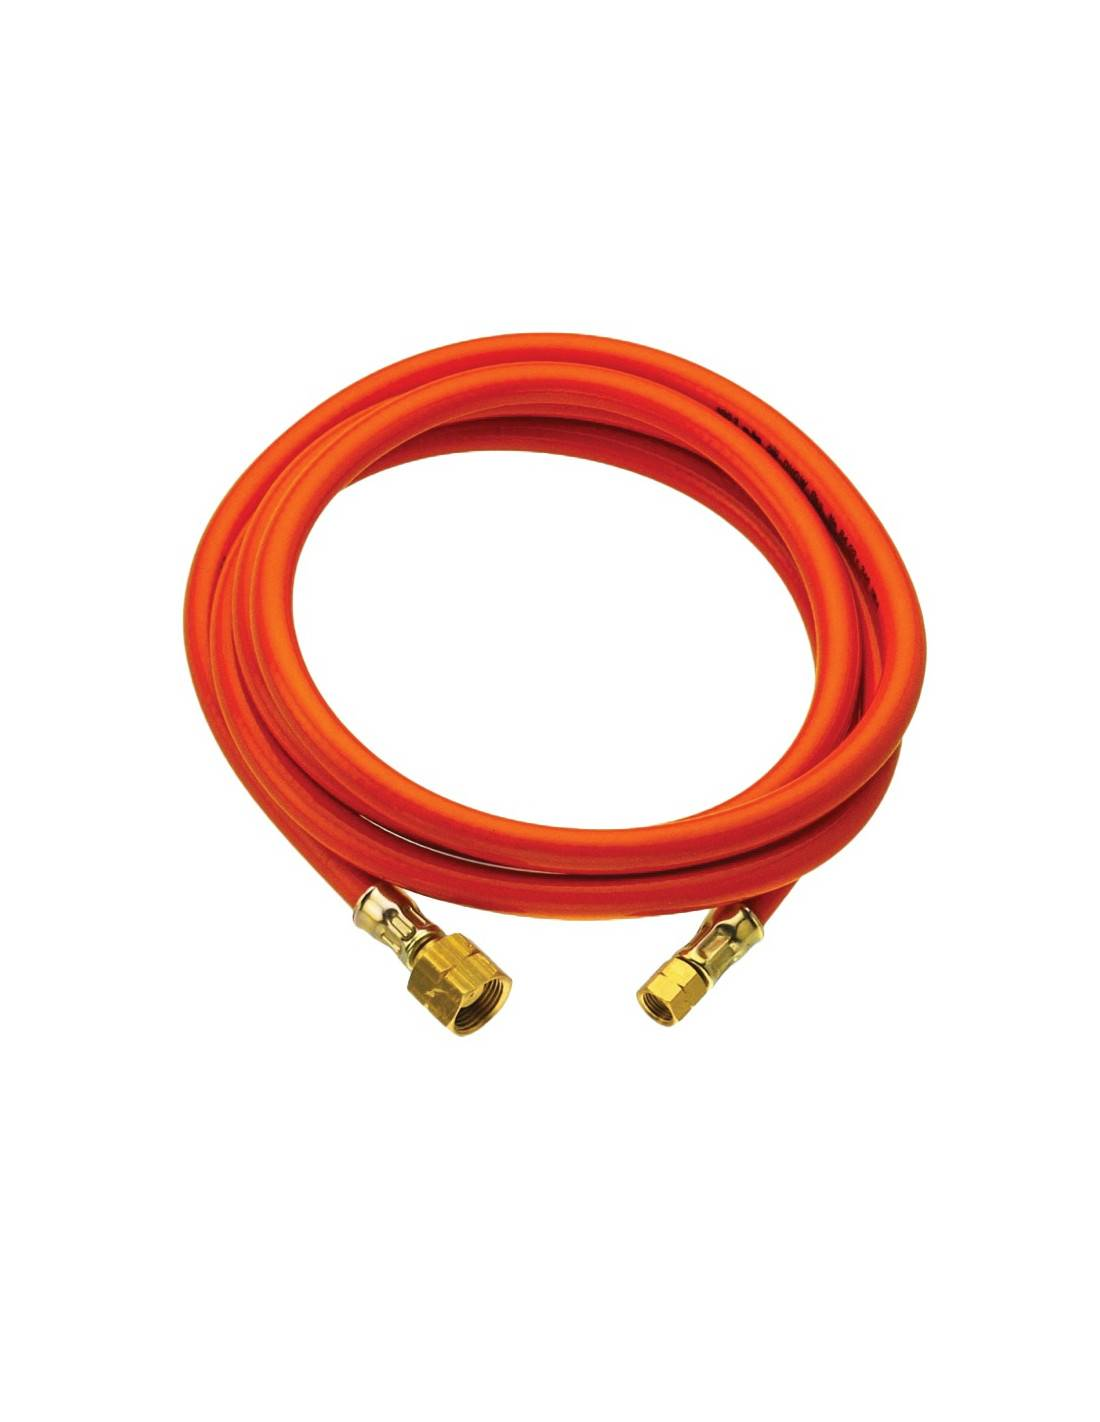 Flexible propane raccord gaz 5 m - ROTHENBERGER - 32223